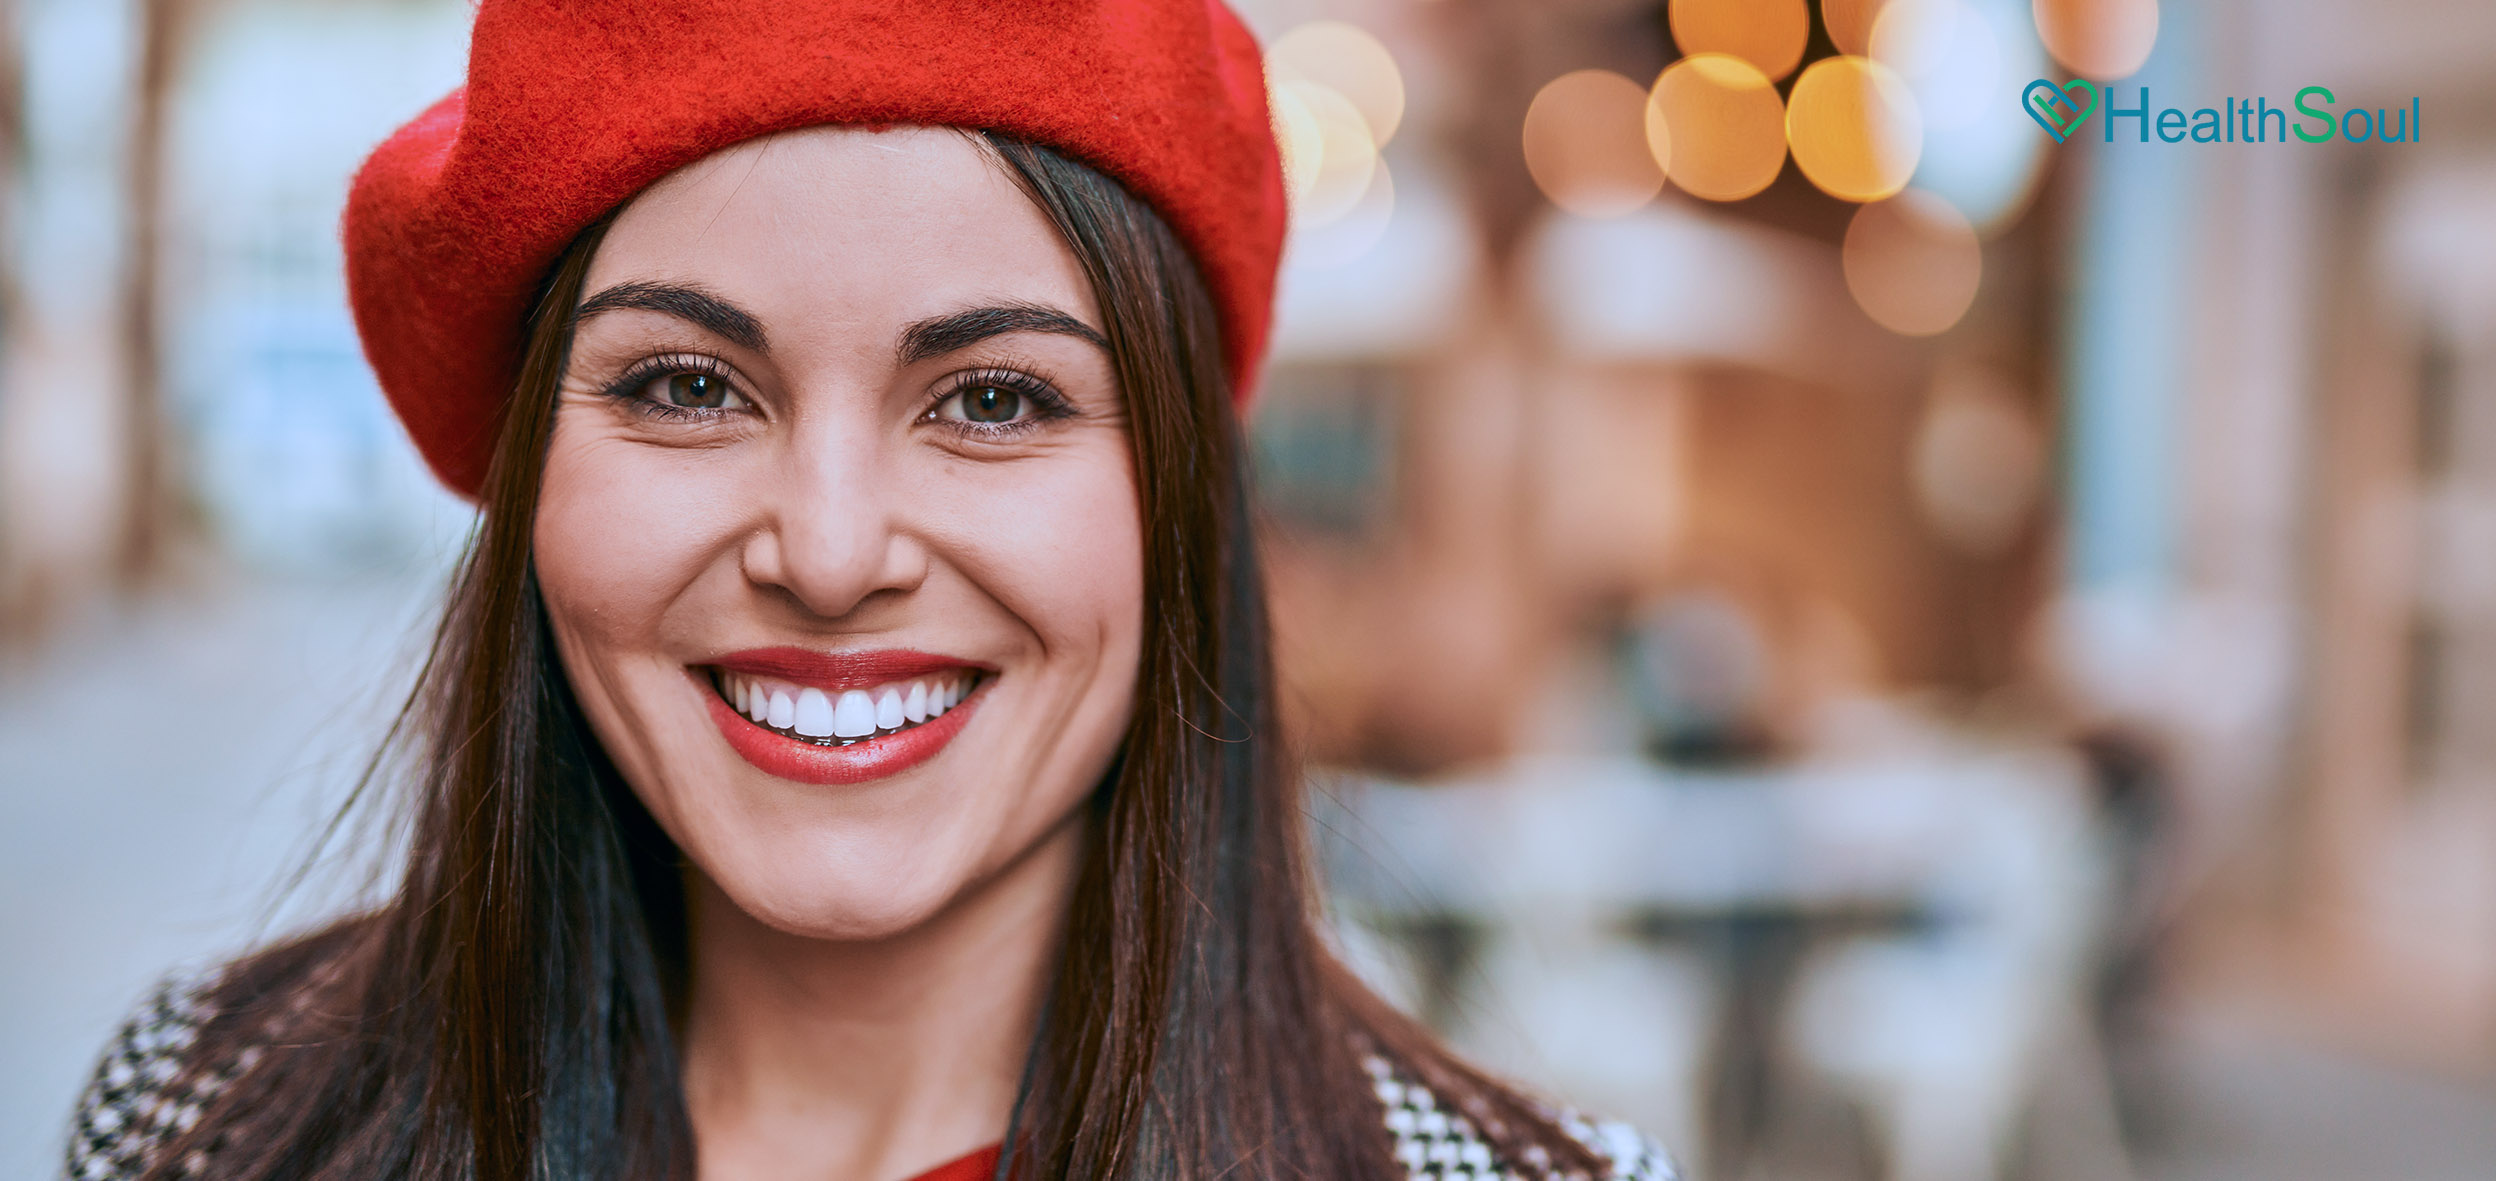 What are All-on-four dental implants? | HealthSoul